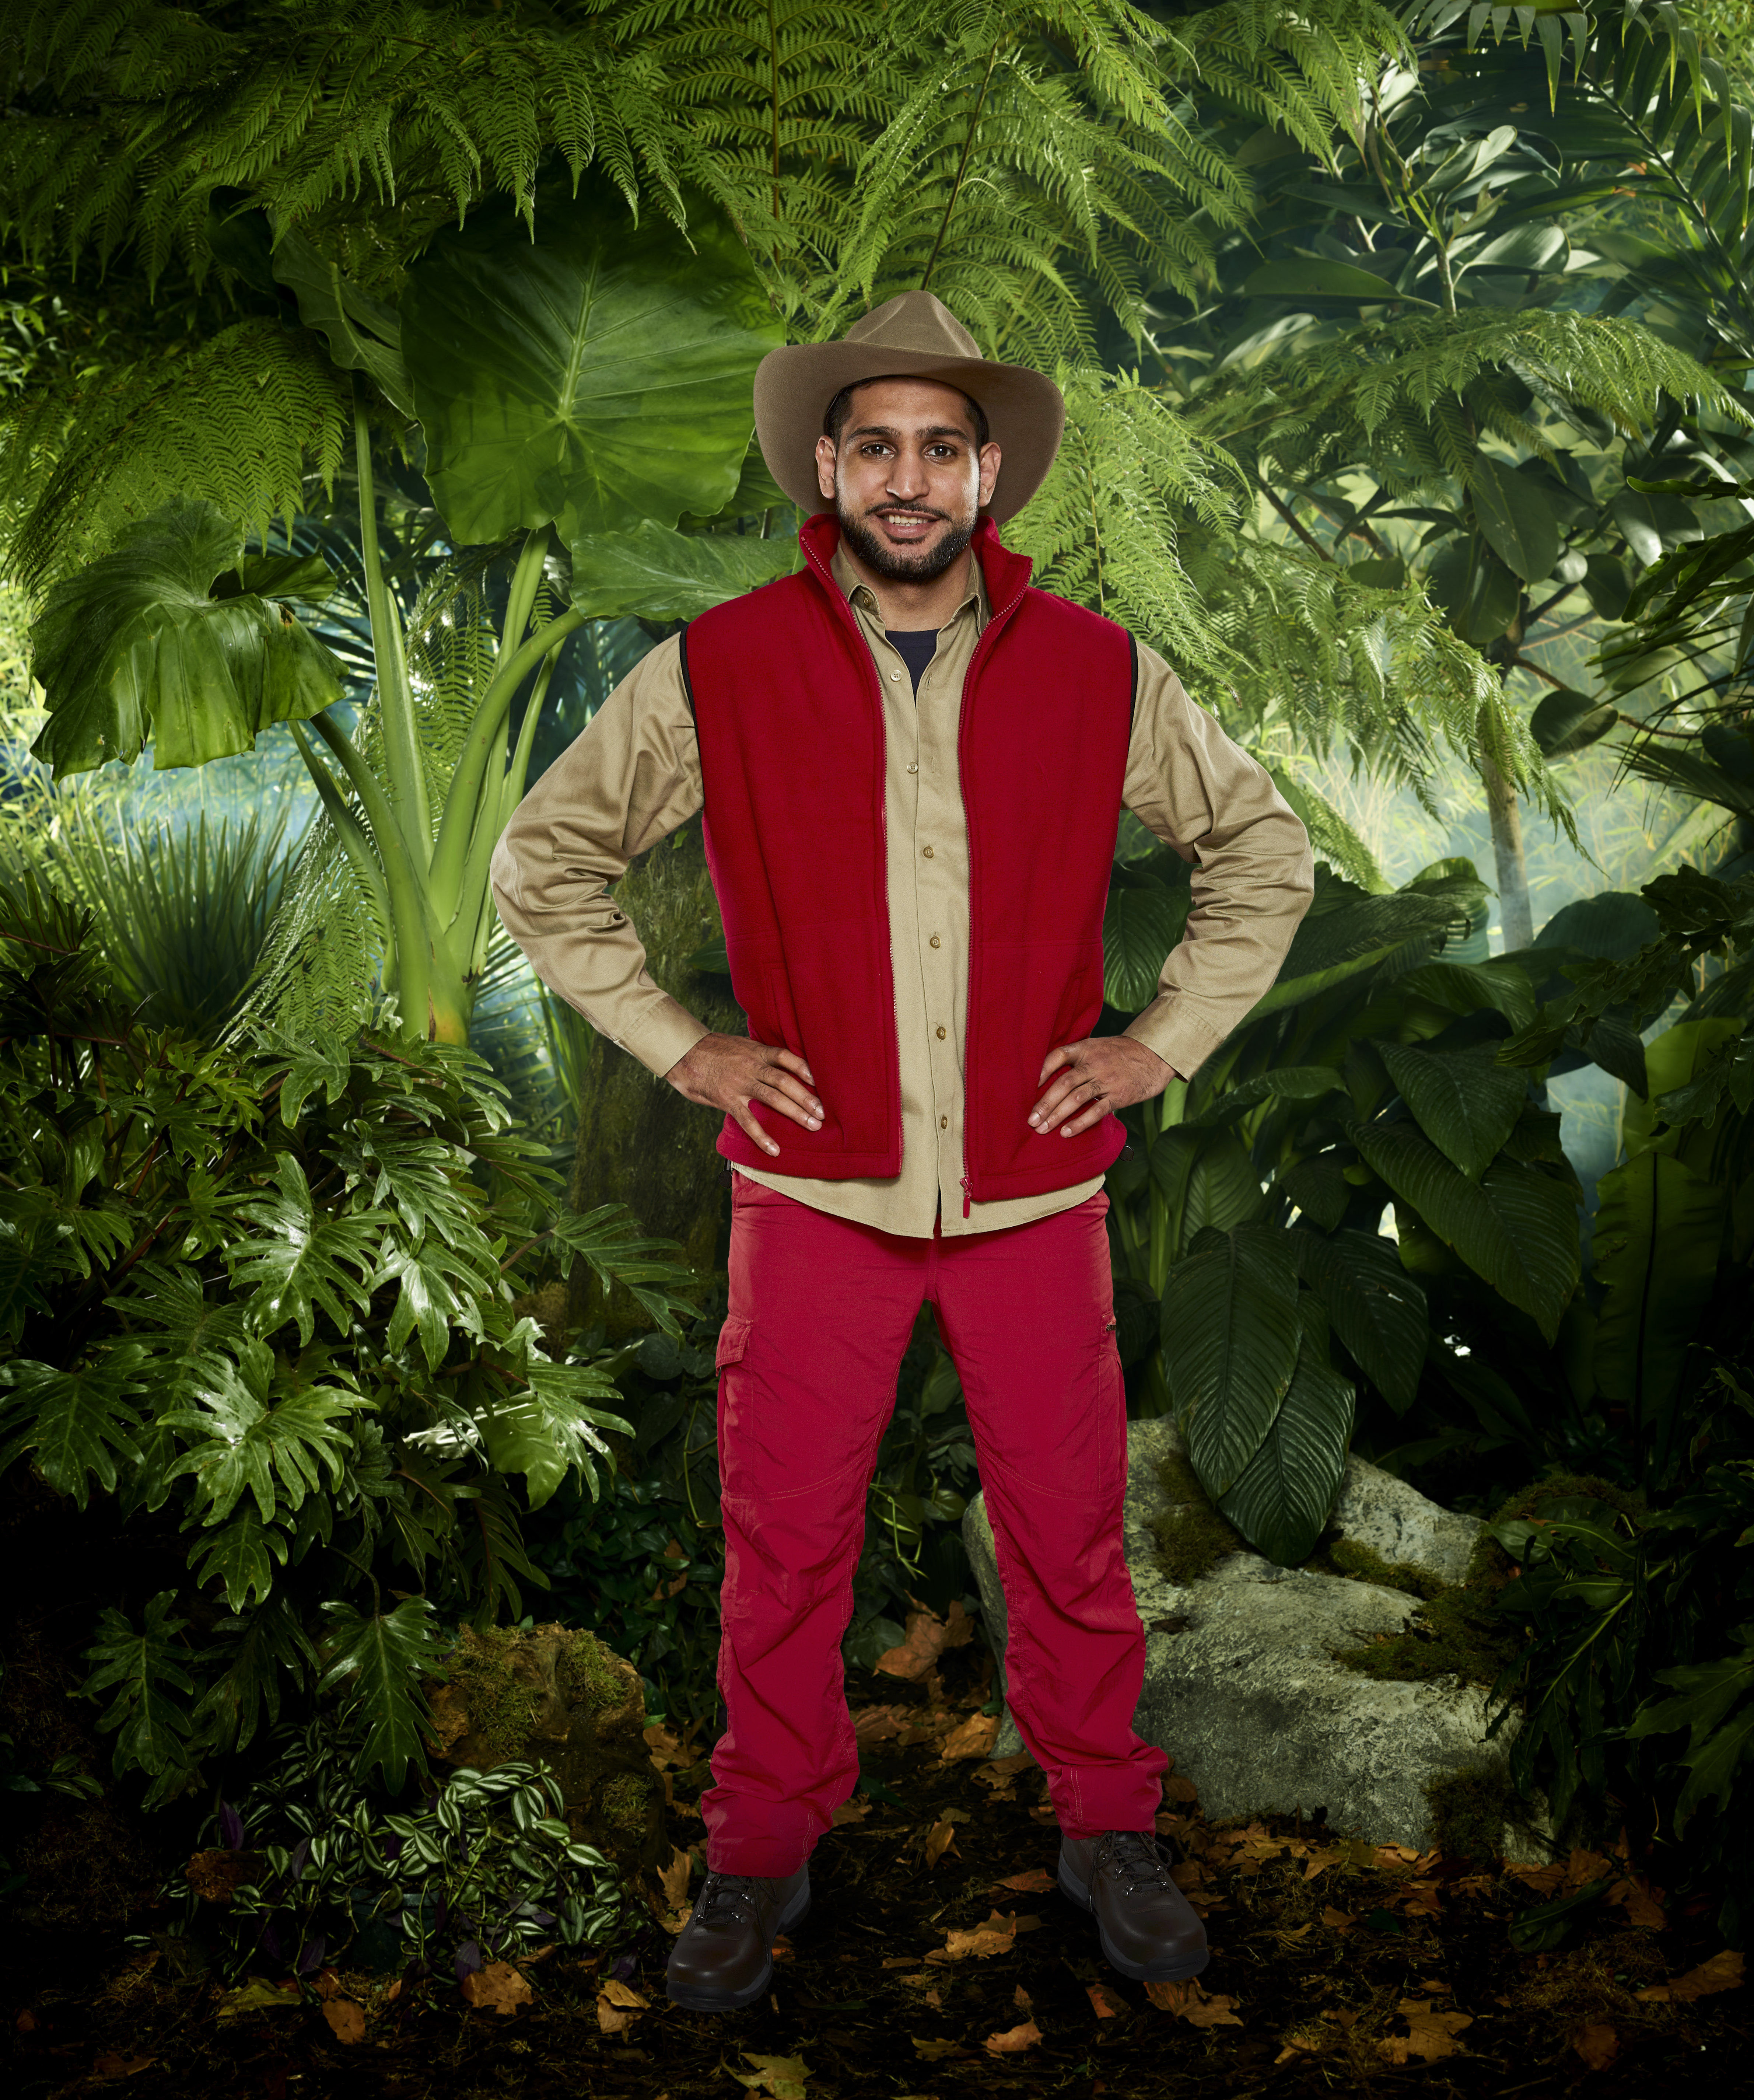 'I'm A Celebrity': Amir Khan Claims Show Is For 'Has Beens' In Resurfaced Tweet